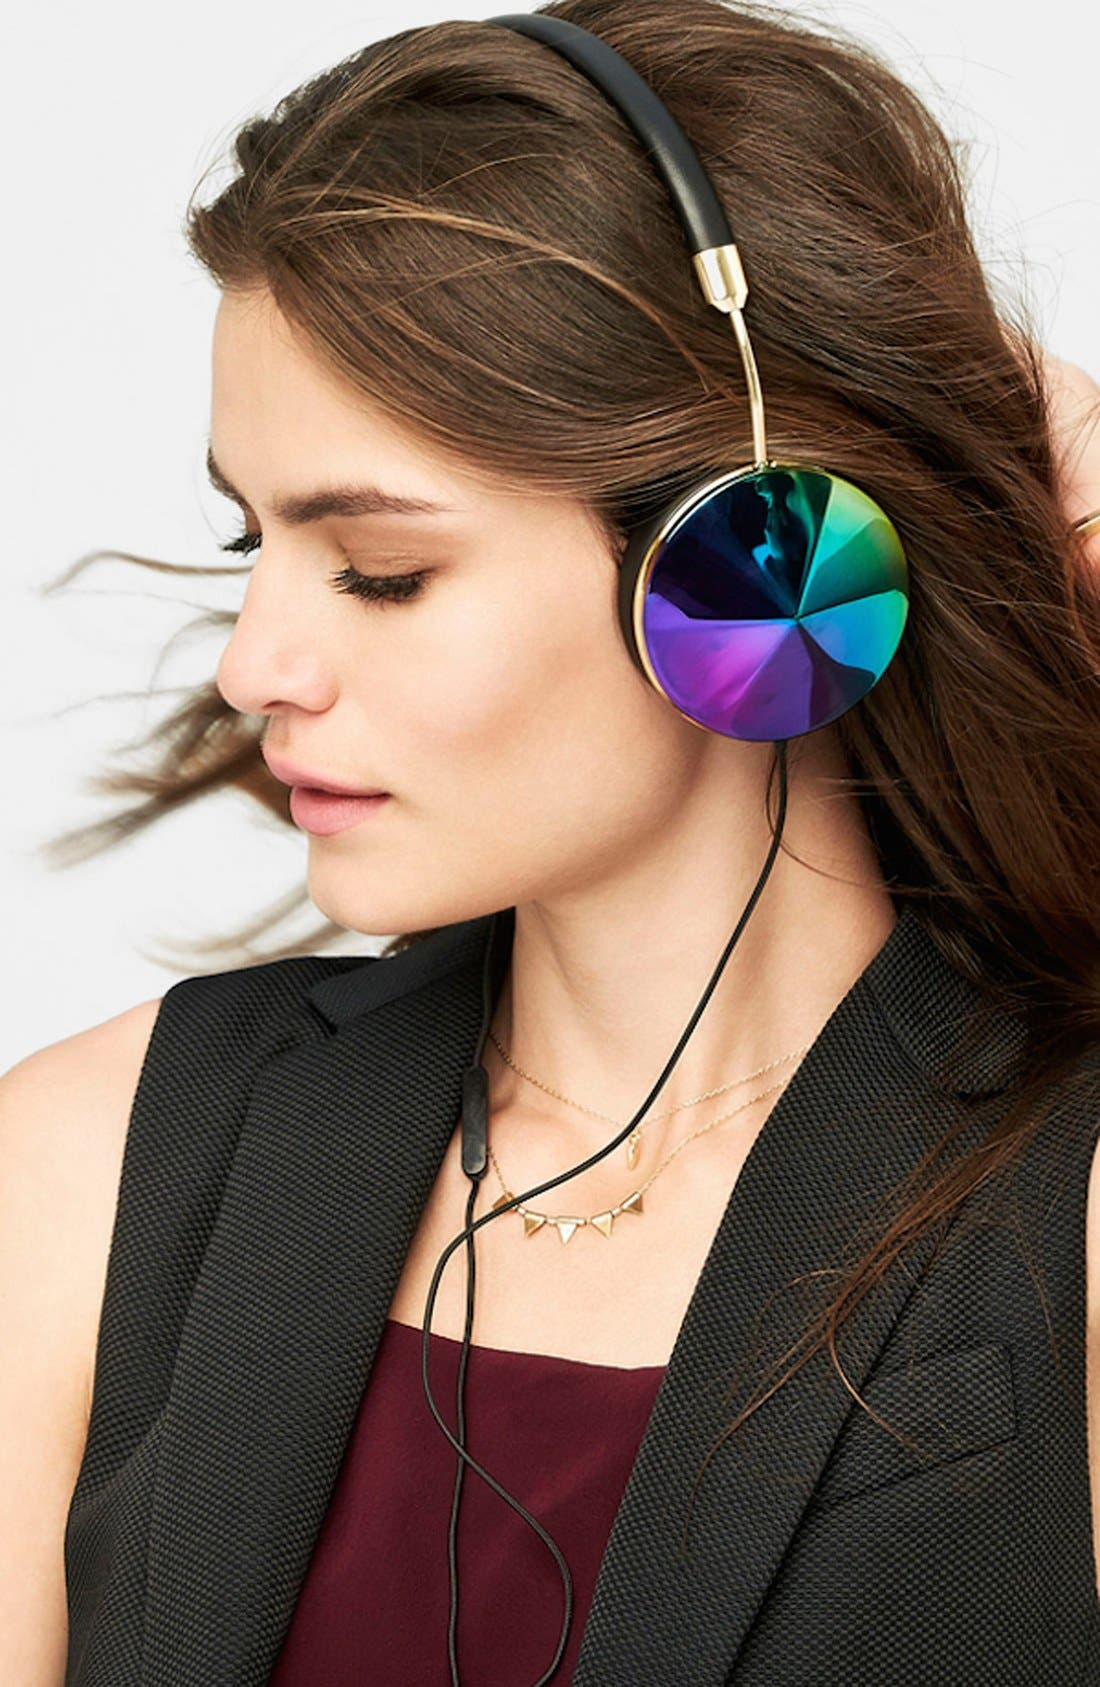 ,                             with Benefits 'Taylor' Headphones,                             Alternate thumbnail 9, color,                             440